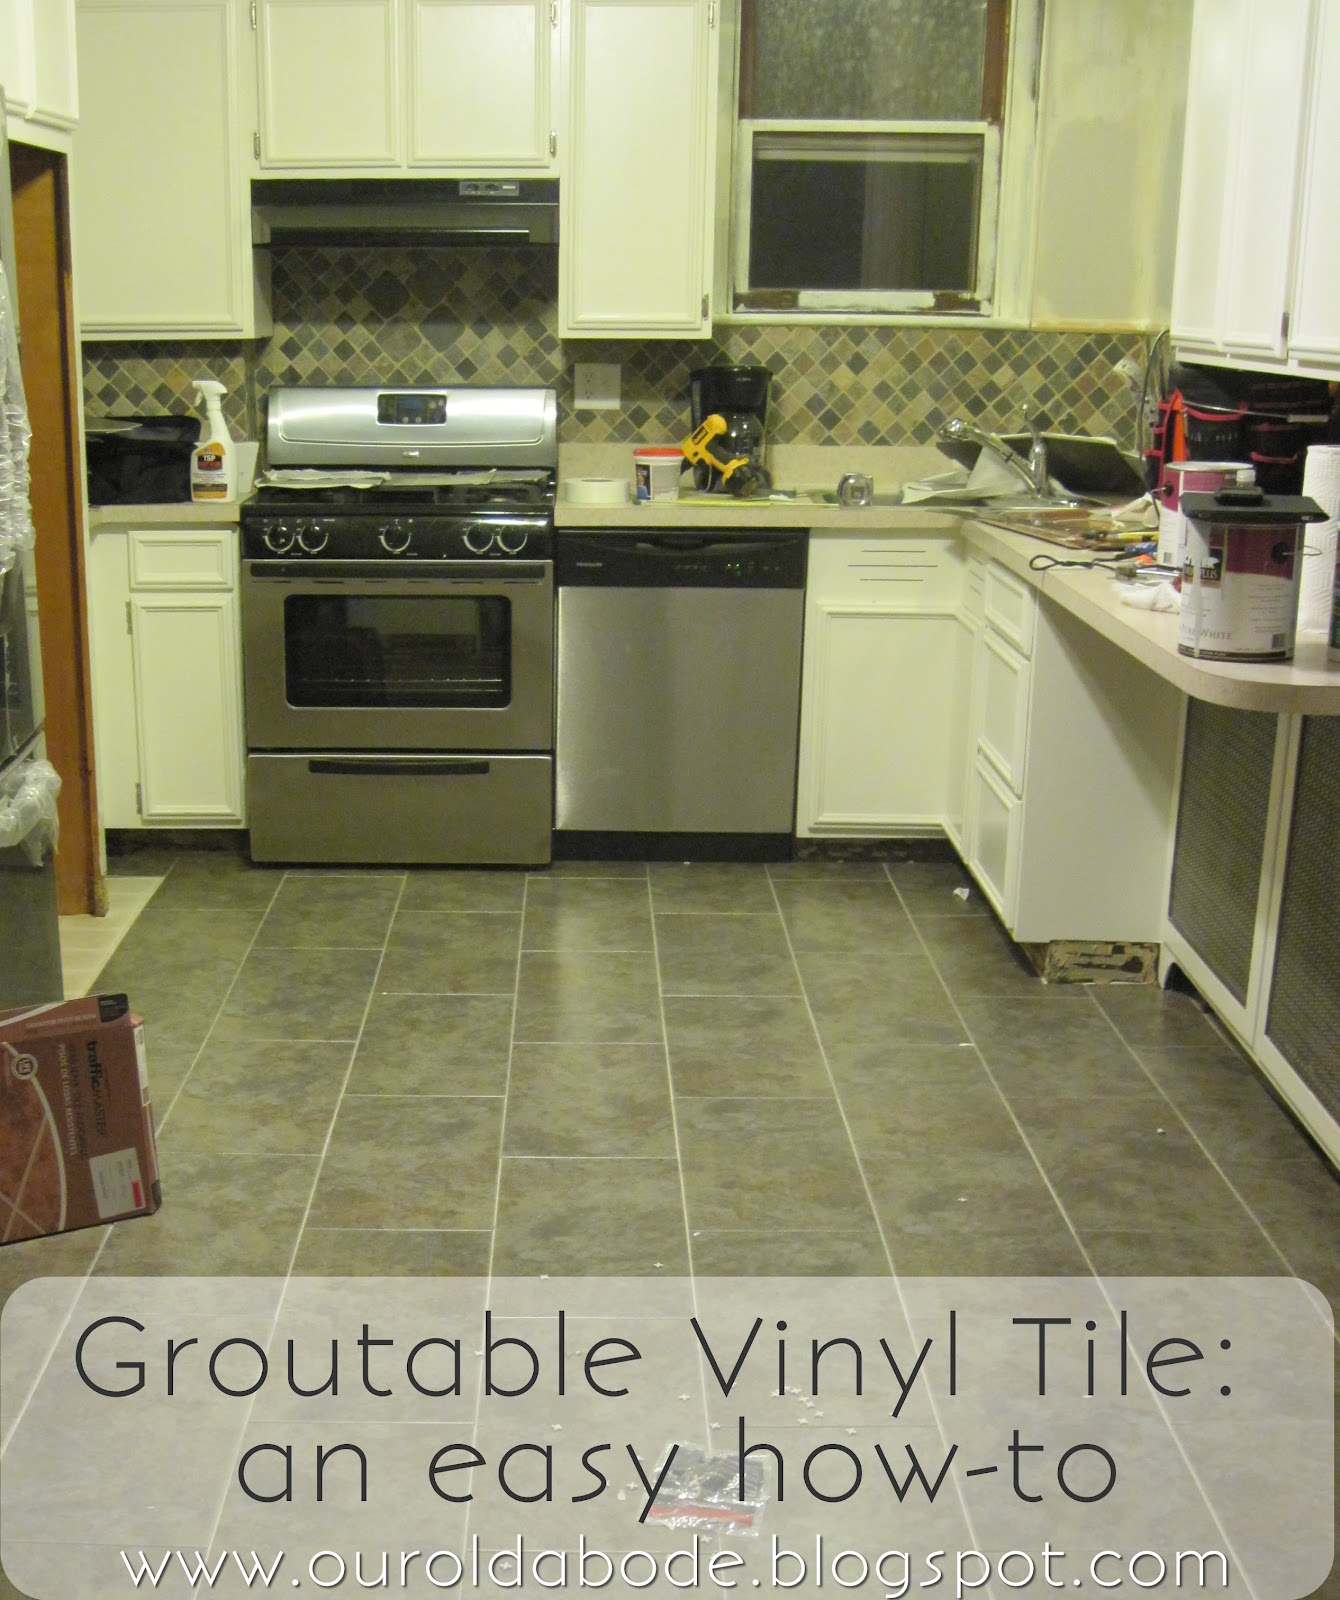 our old abode kitchen floor groutable vinyl tile. Black Bedroom Furniture Sets. Home Design Ideas